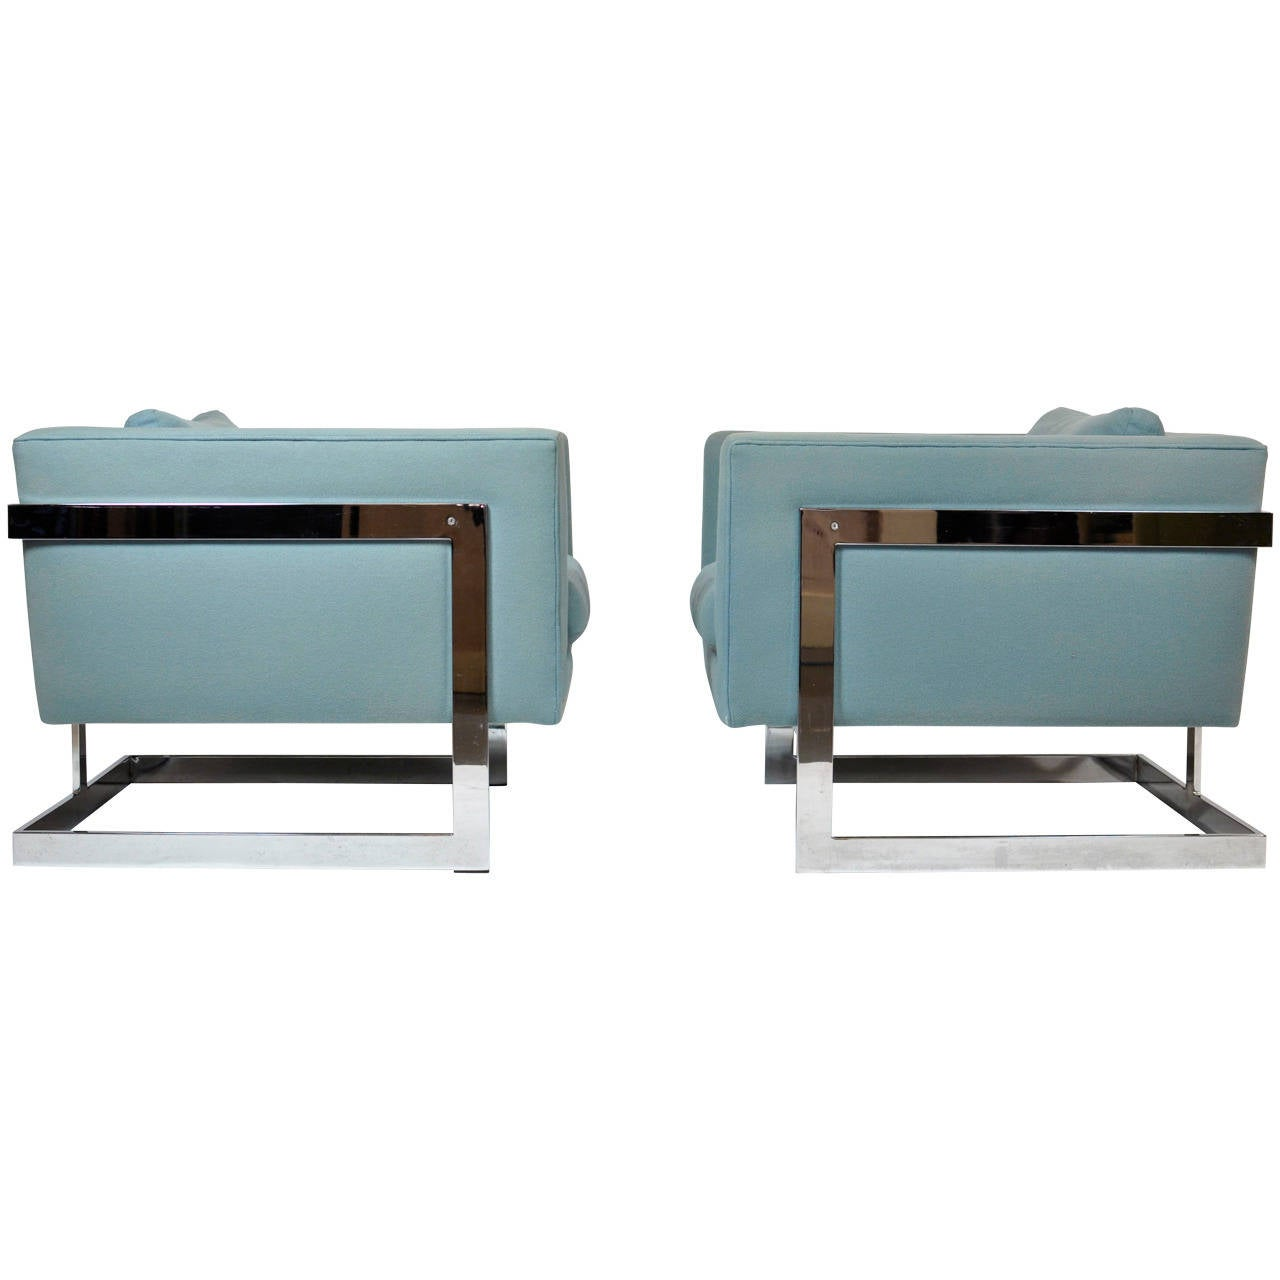 Milo Baughman Large Cube Lounge Chairs